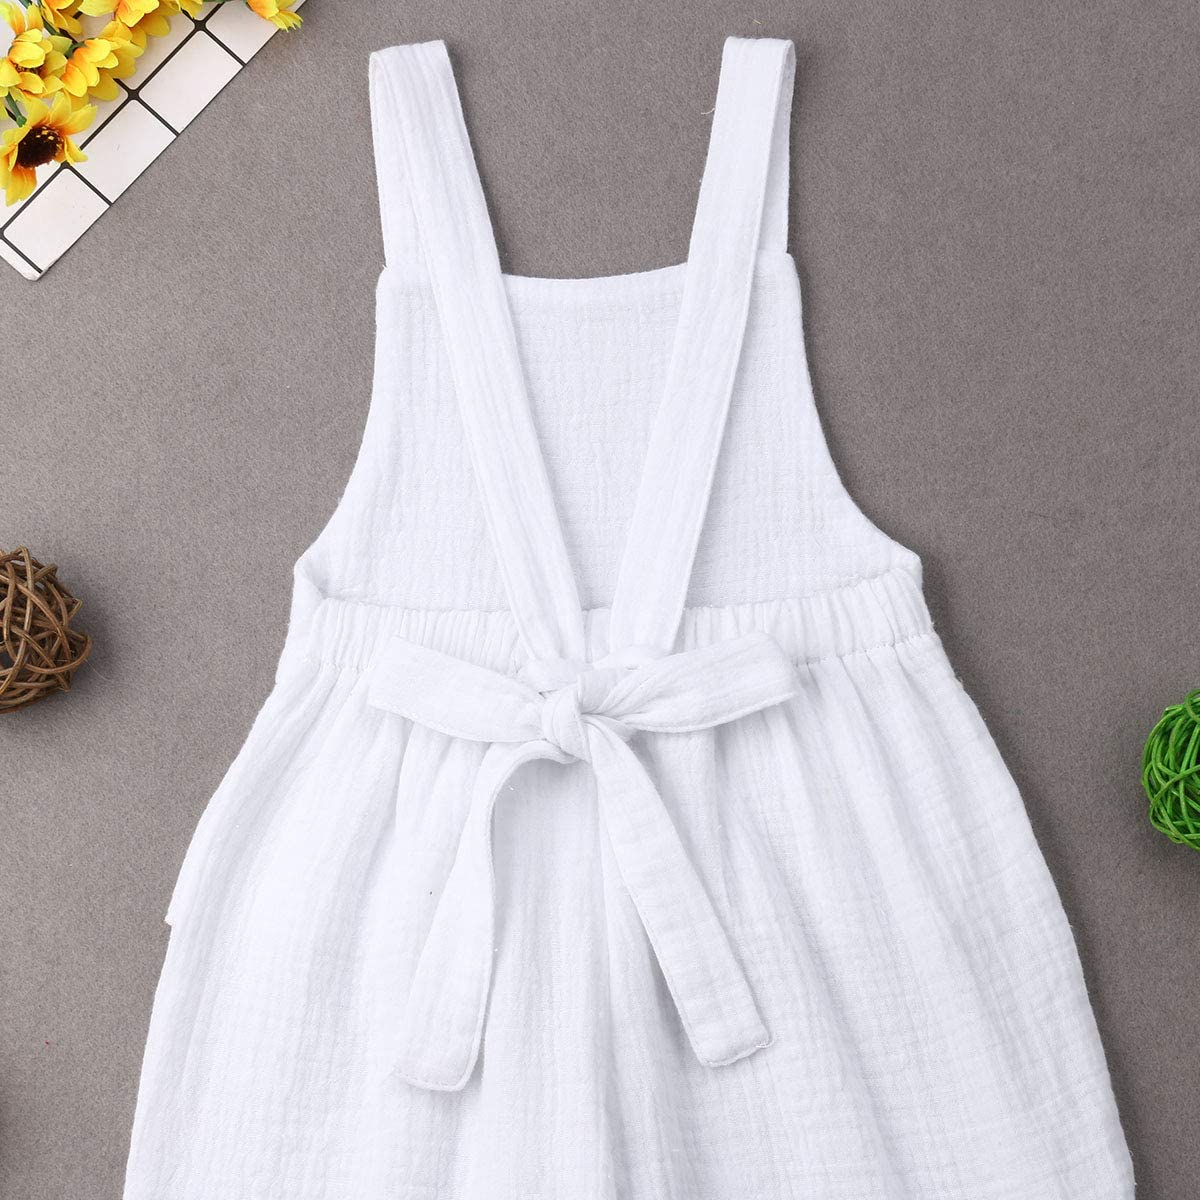 Mubineo Toddler Baby Girl Basic Plain Ruffle Wide Leg Overalls Romper Jumpsuit Colthes